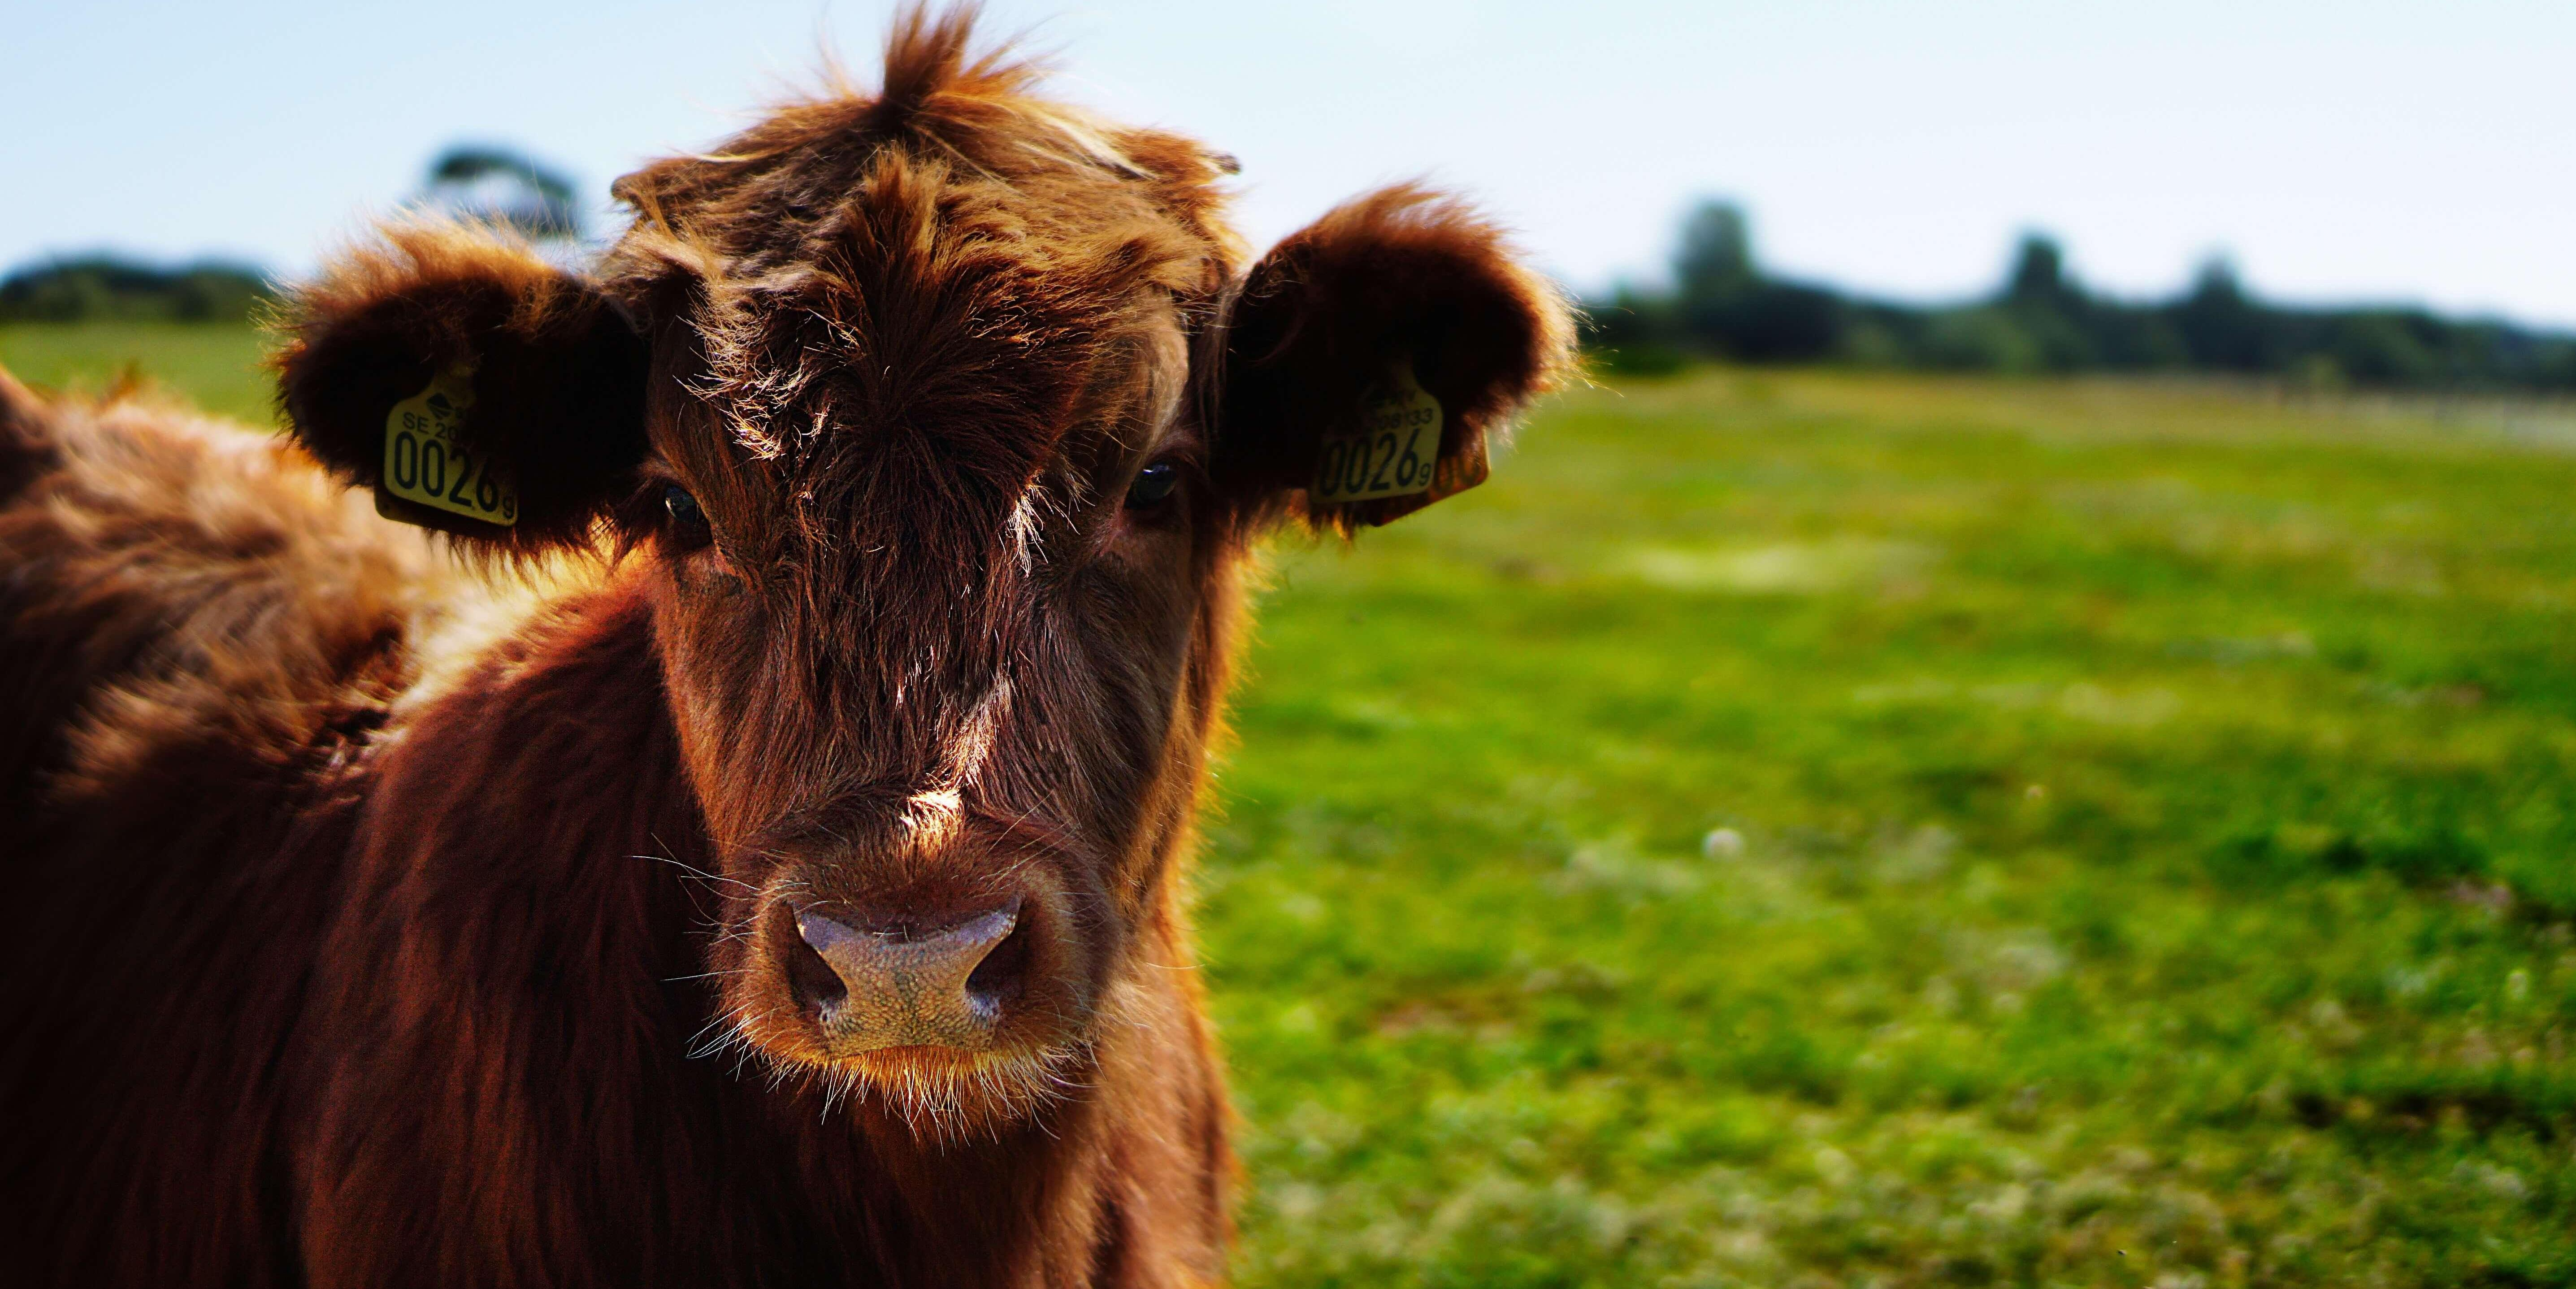 Your 'grass-fed' beef may not have come from a cow grazing in a pasture. Here's why.